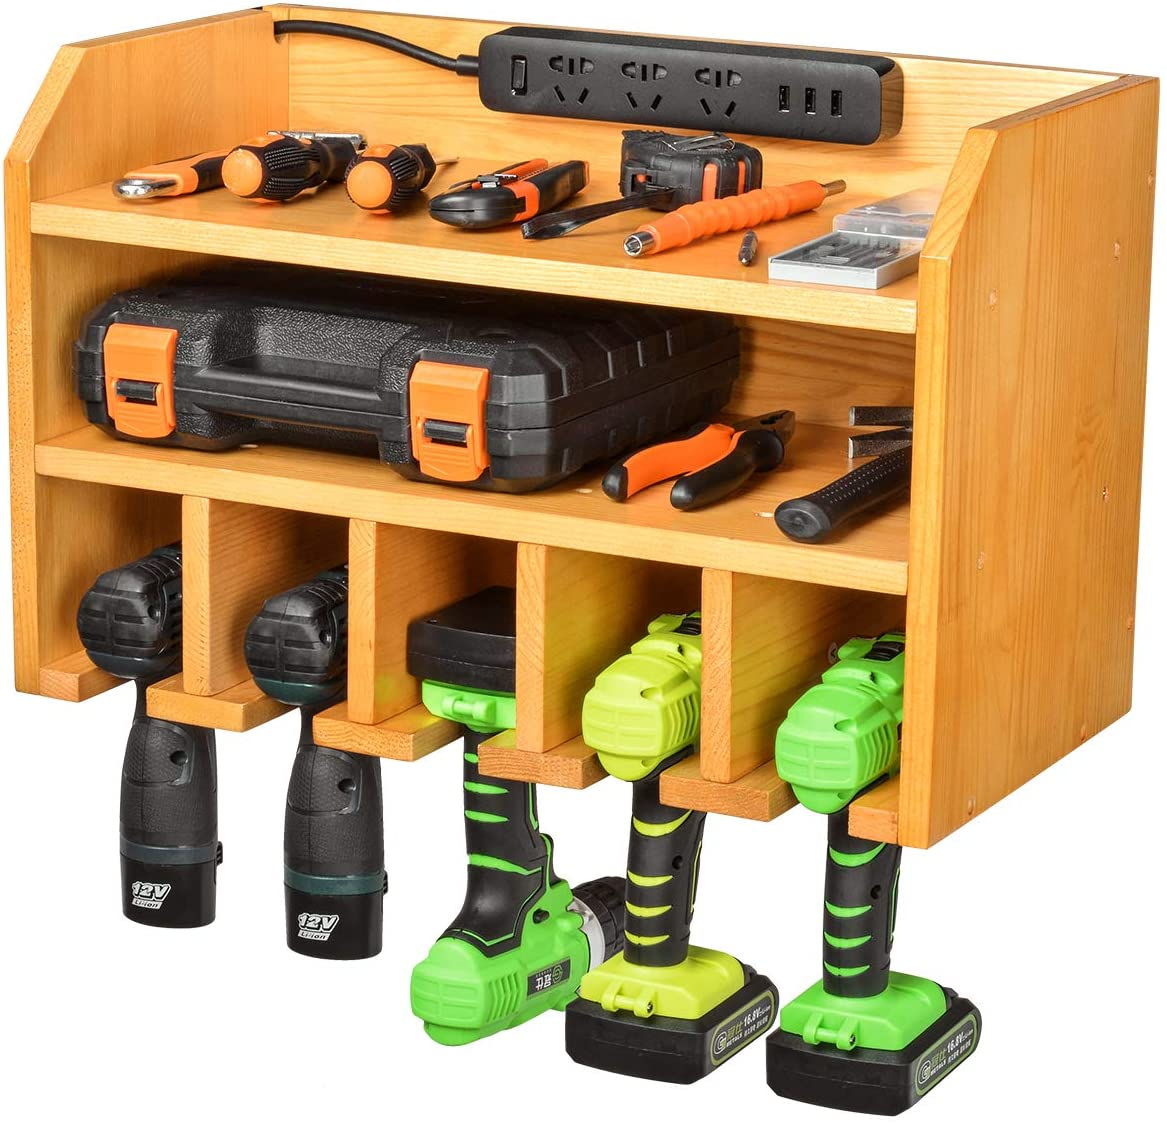 Drill Charging Station Drill Storage Wall Mounted Tool Storage Organizer Power Tool Storage – Power Drill Toolbox Screwdriver Cordless Drill Organizer – Tool, Parts Craft Organizer Wooden